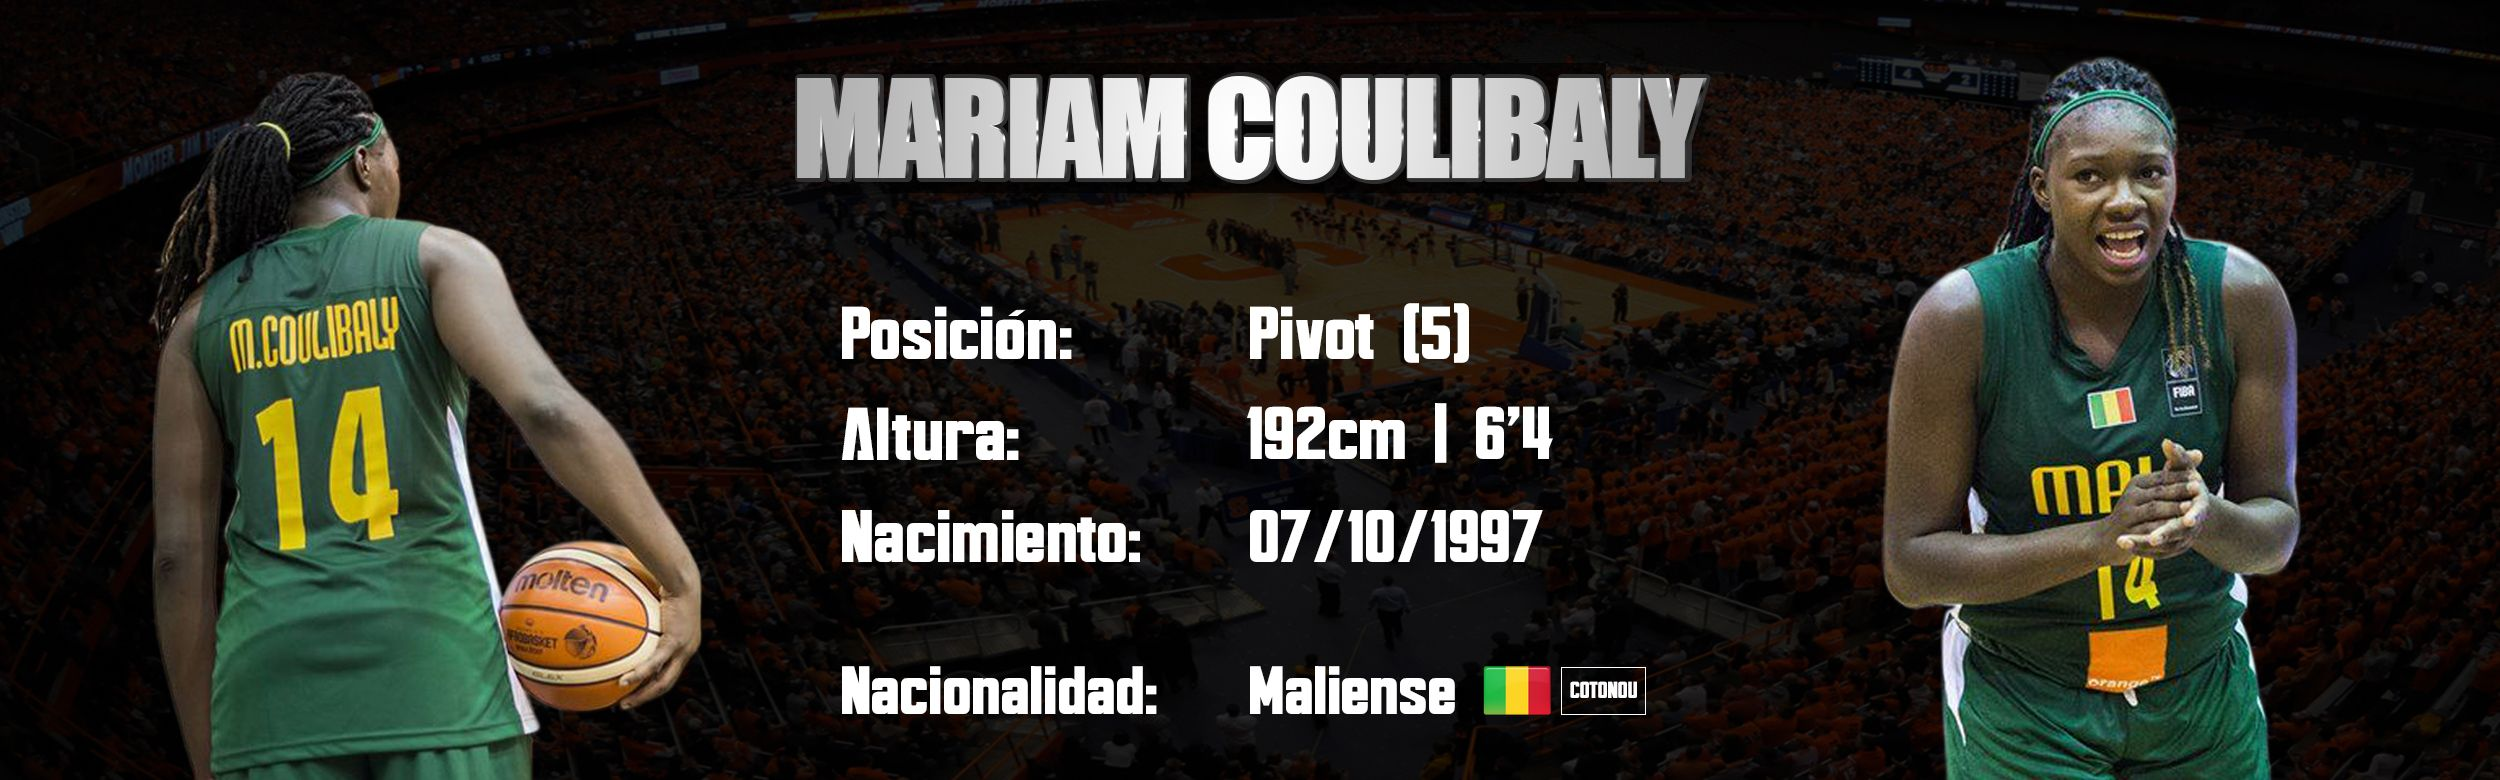 Mariam Coulibaly